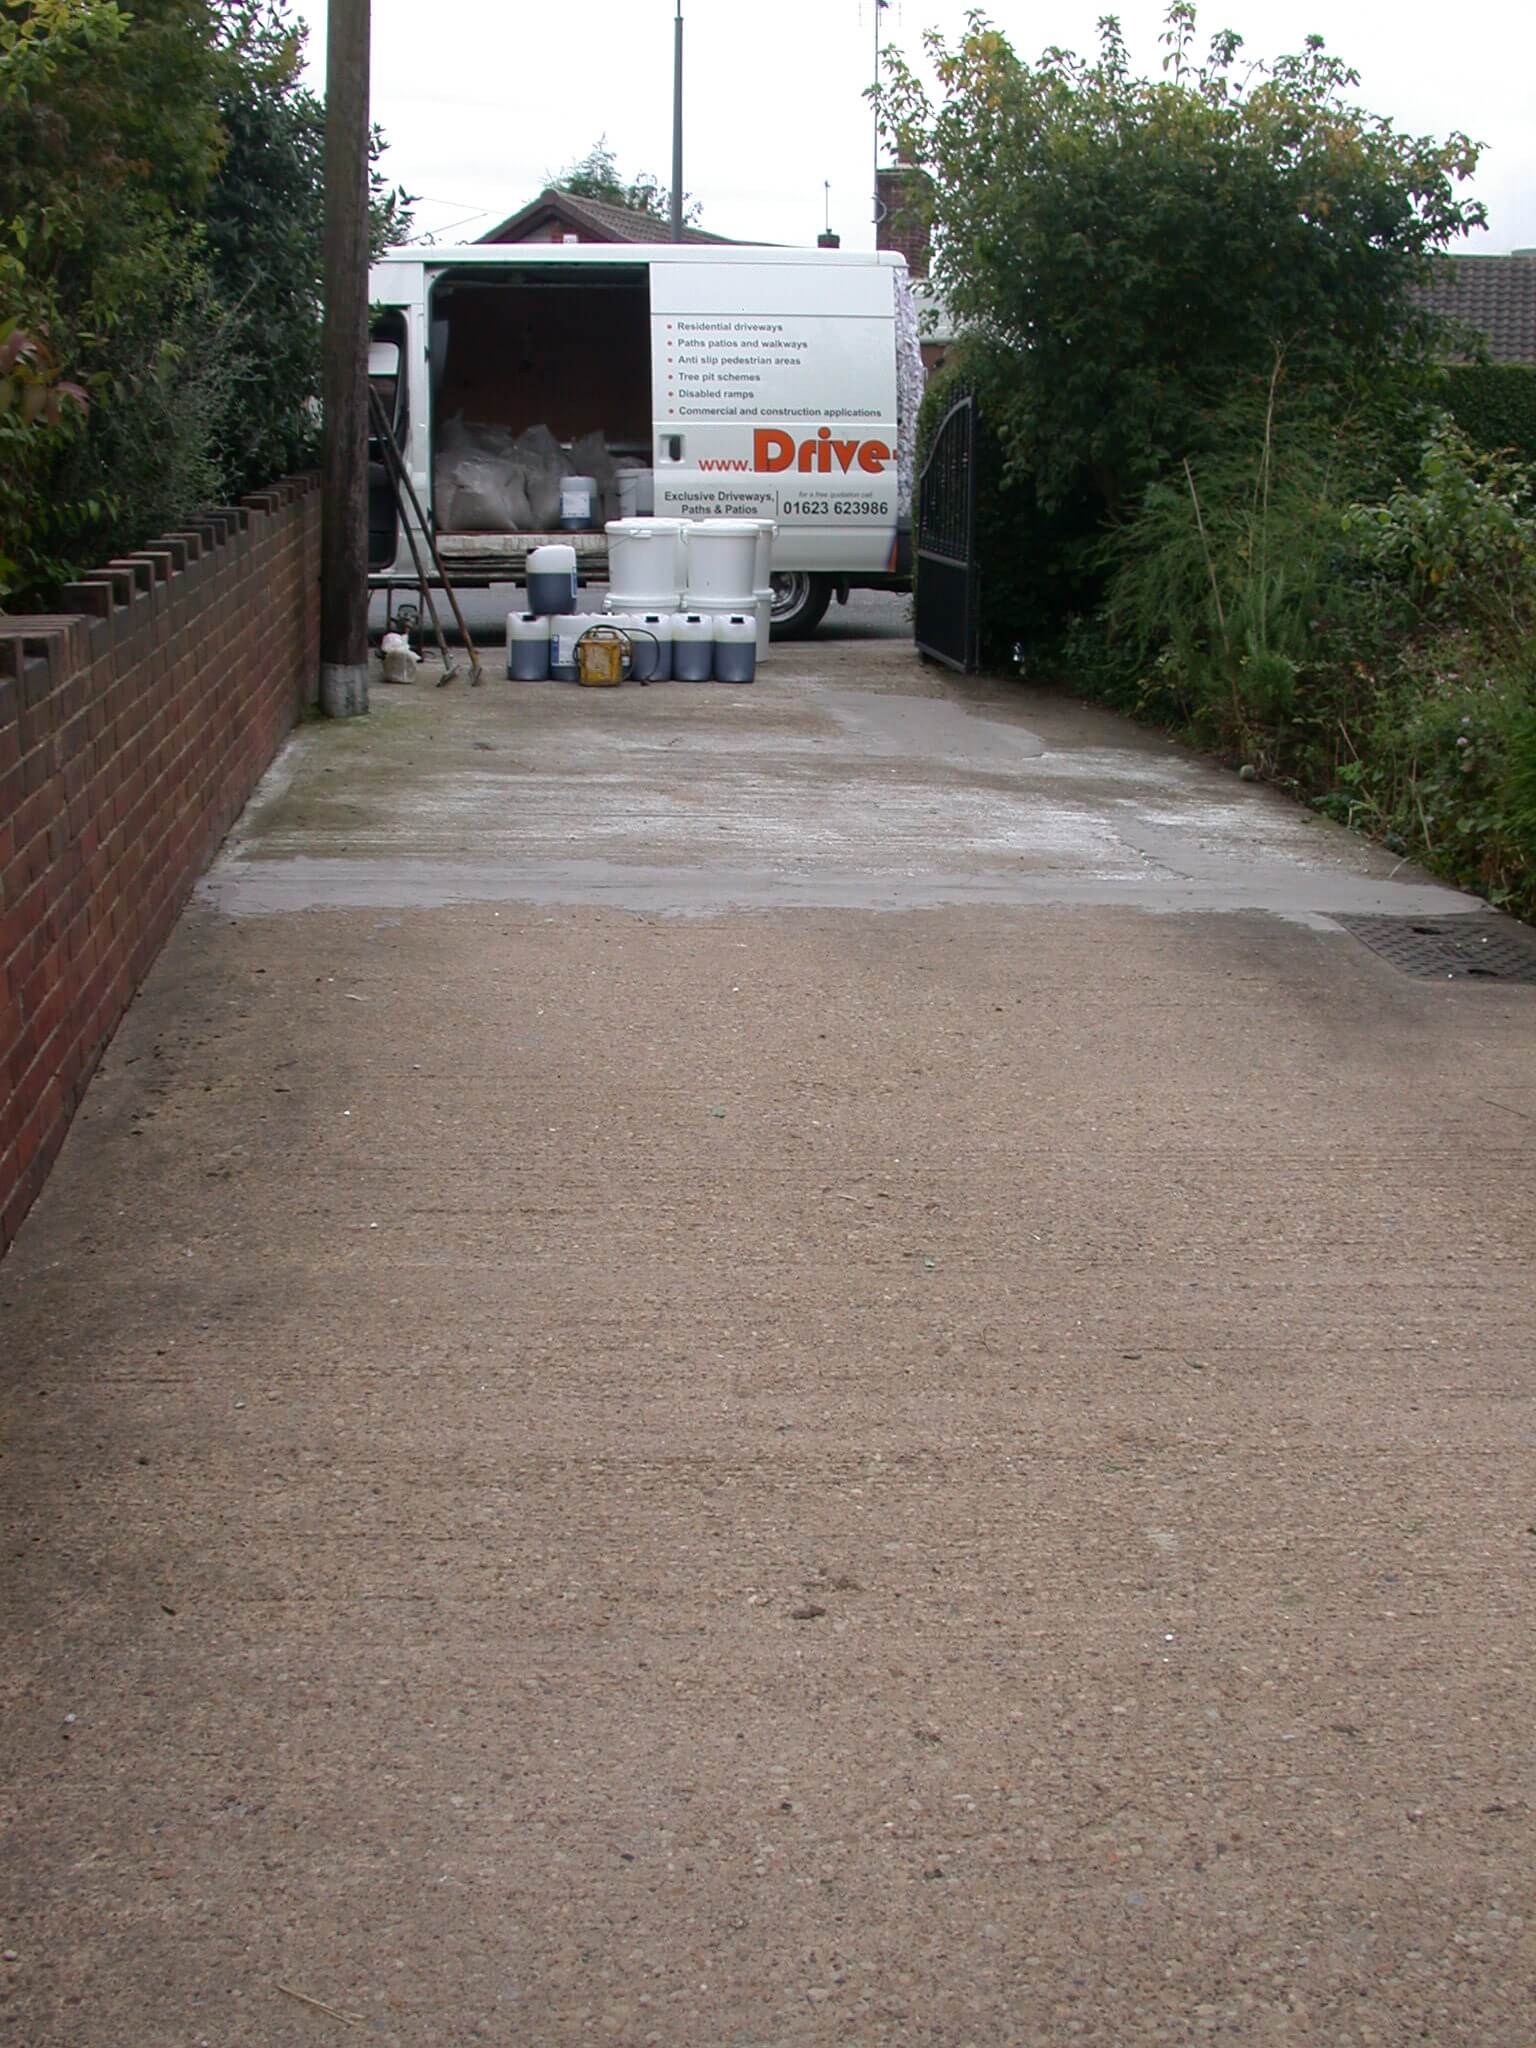 Resin bonded aggregate by drive cote ltd 12 years of for Temperature to pour concrete driveway